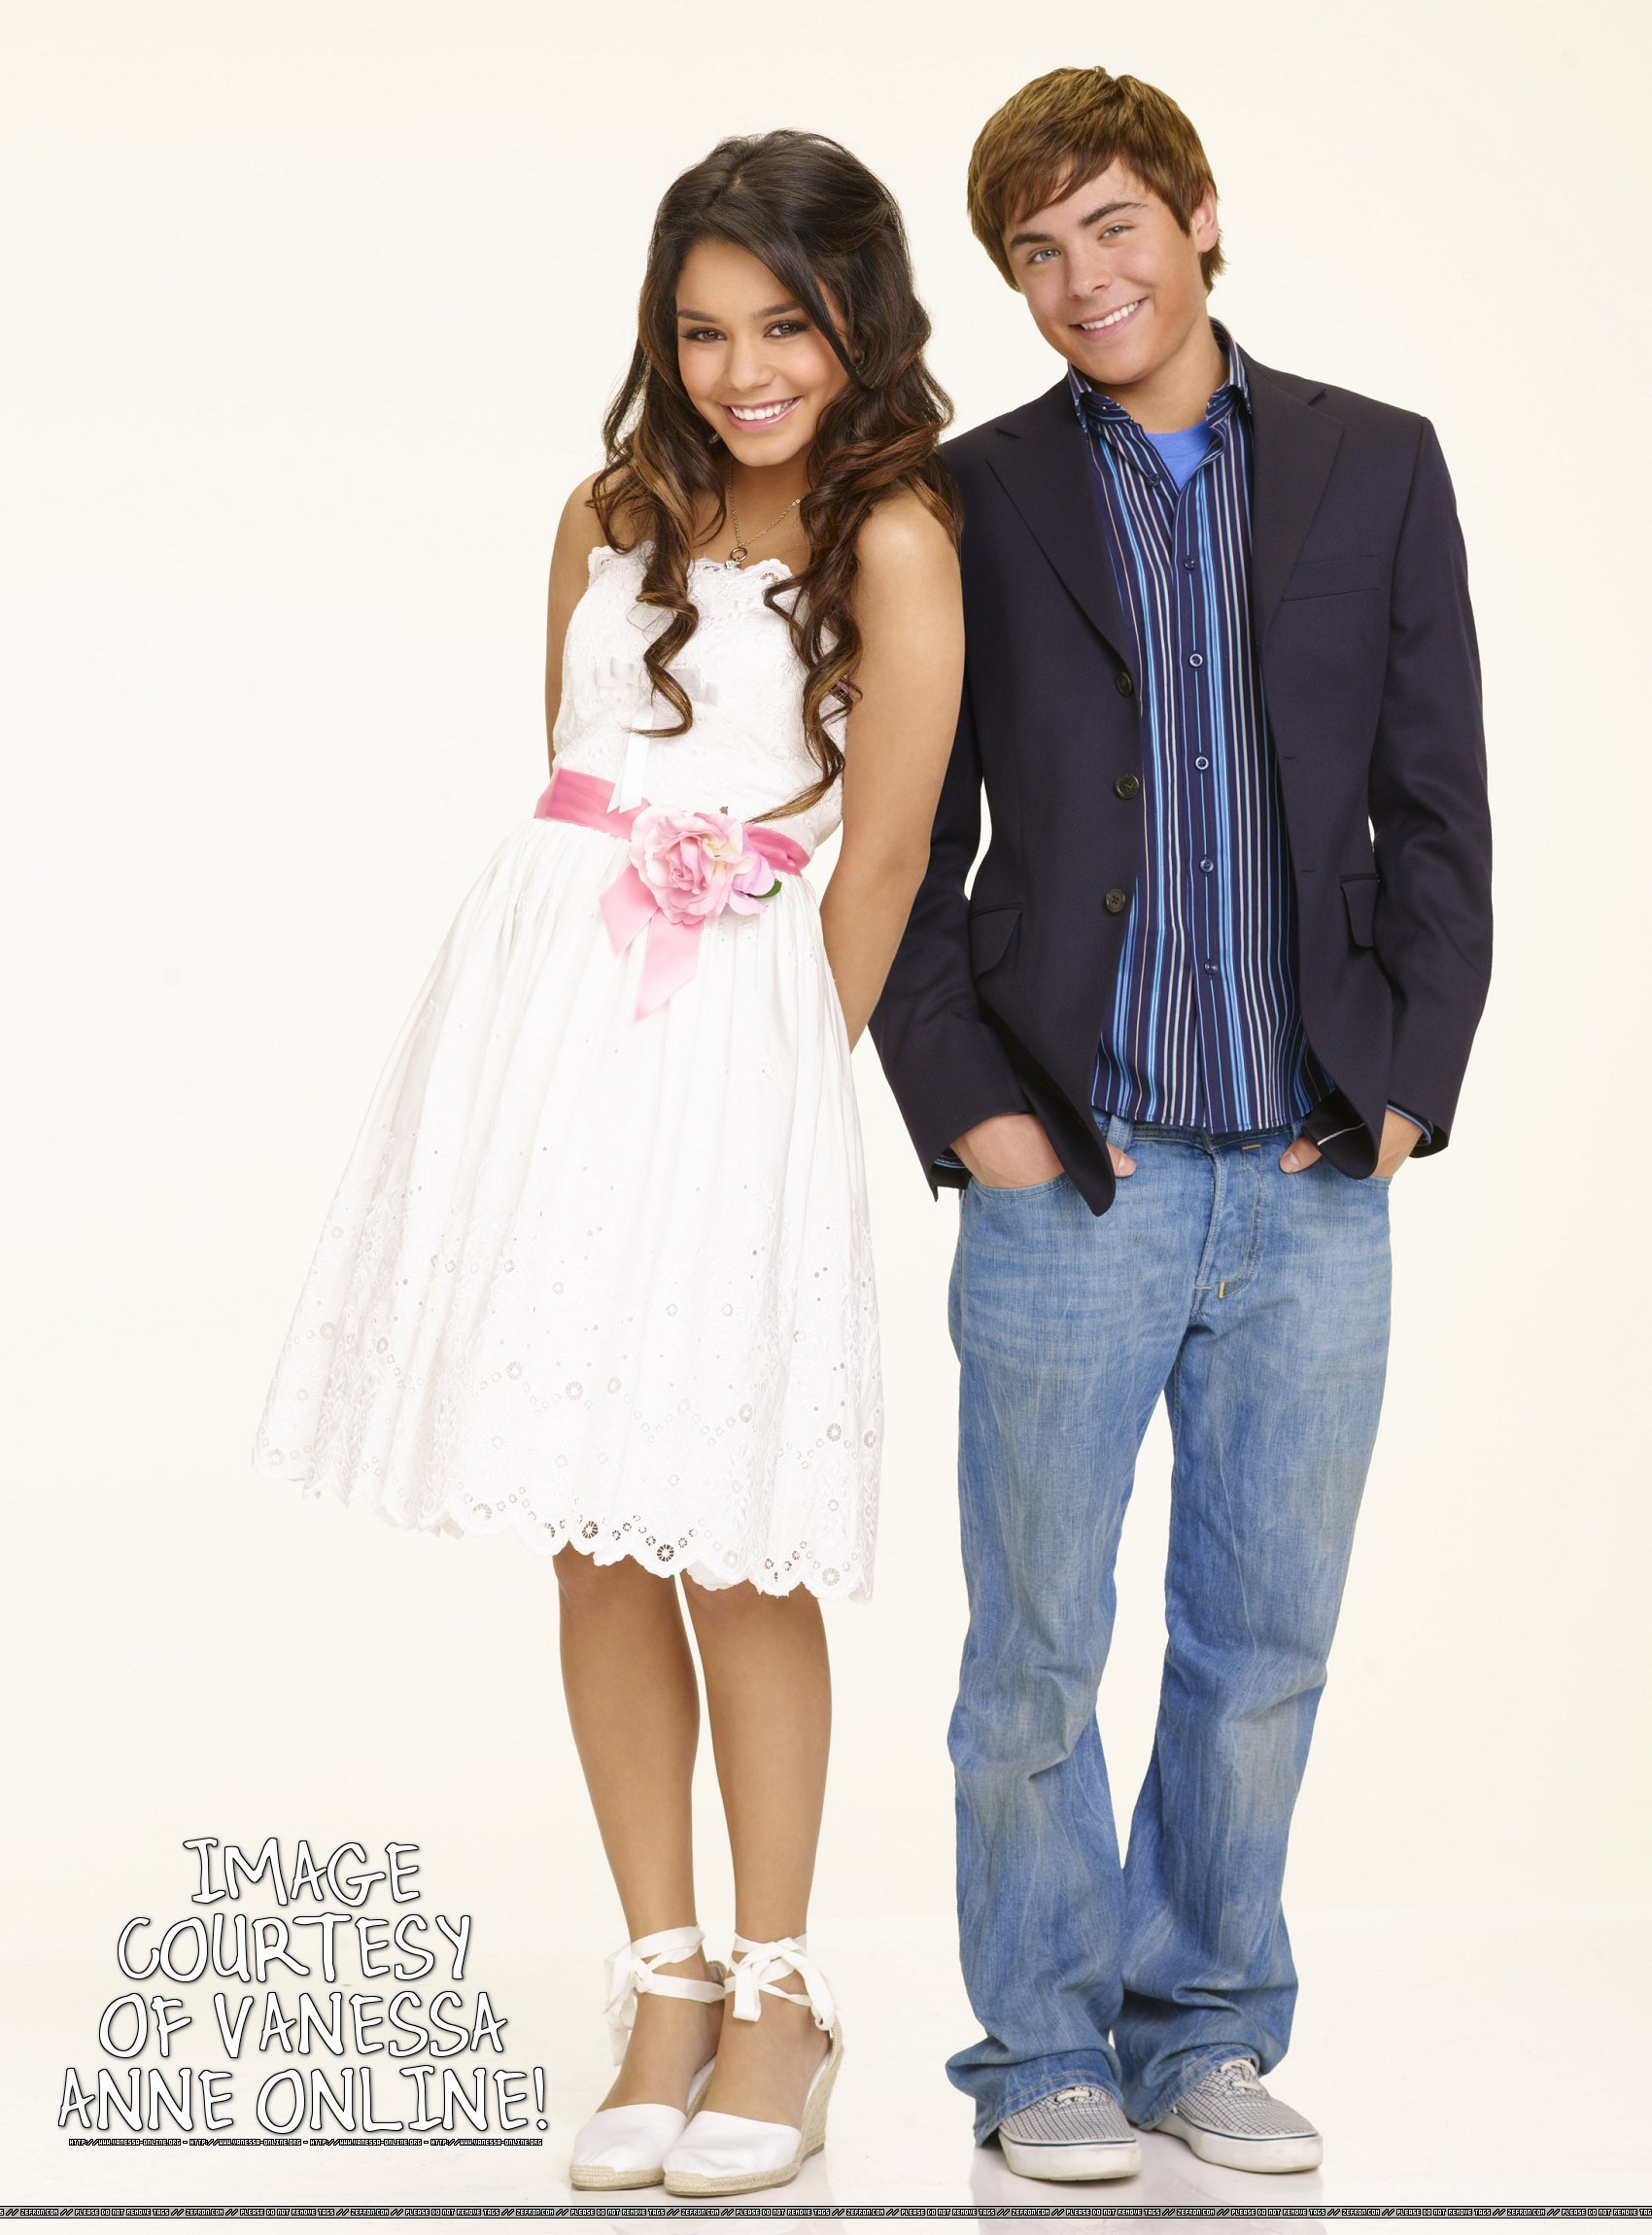 Troyella images Promo HSM 2 HD wallpaper and background photos